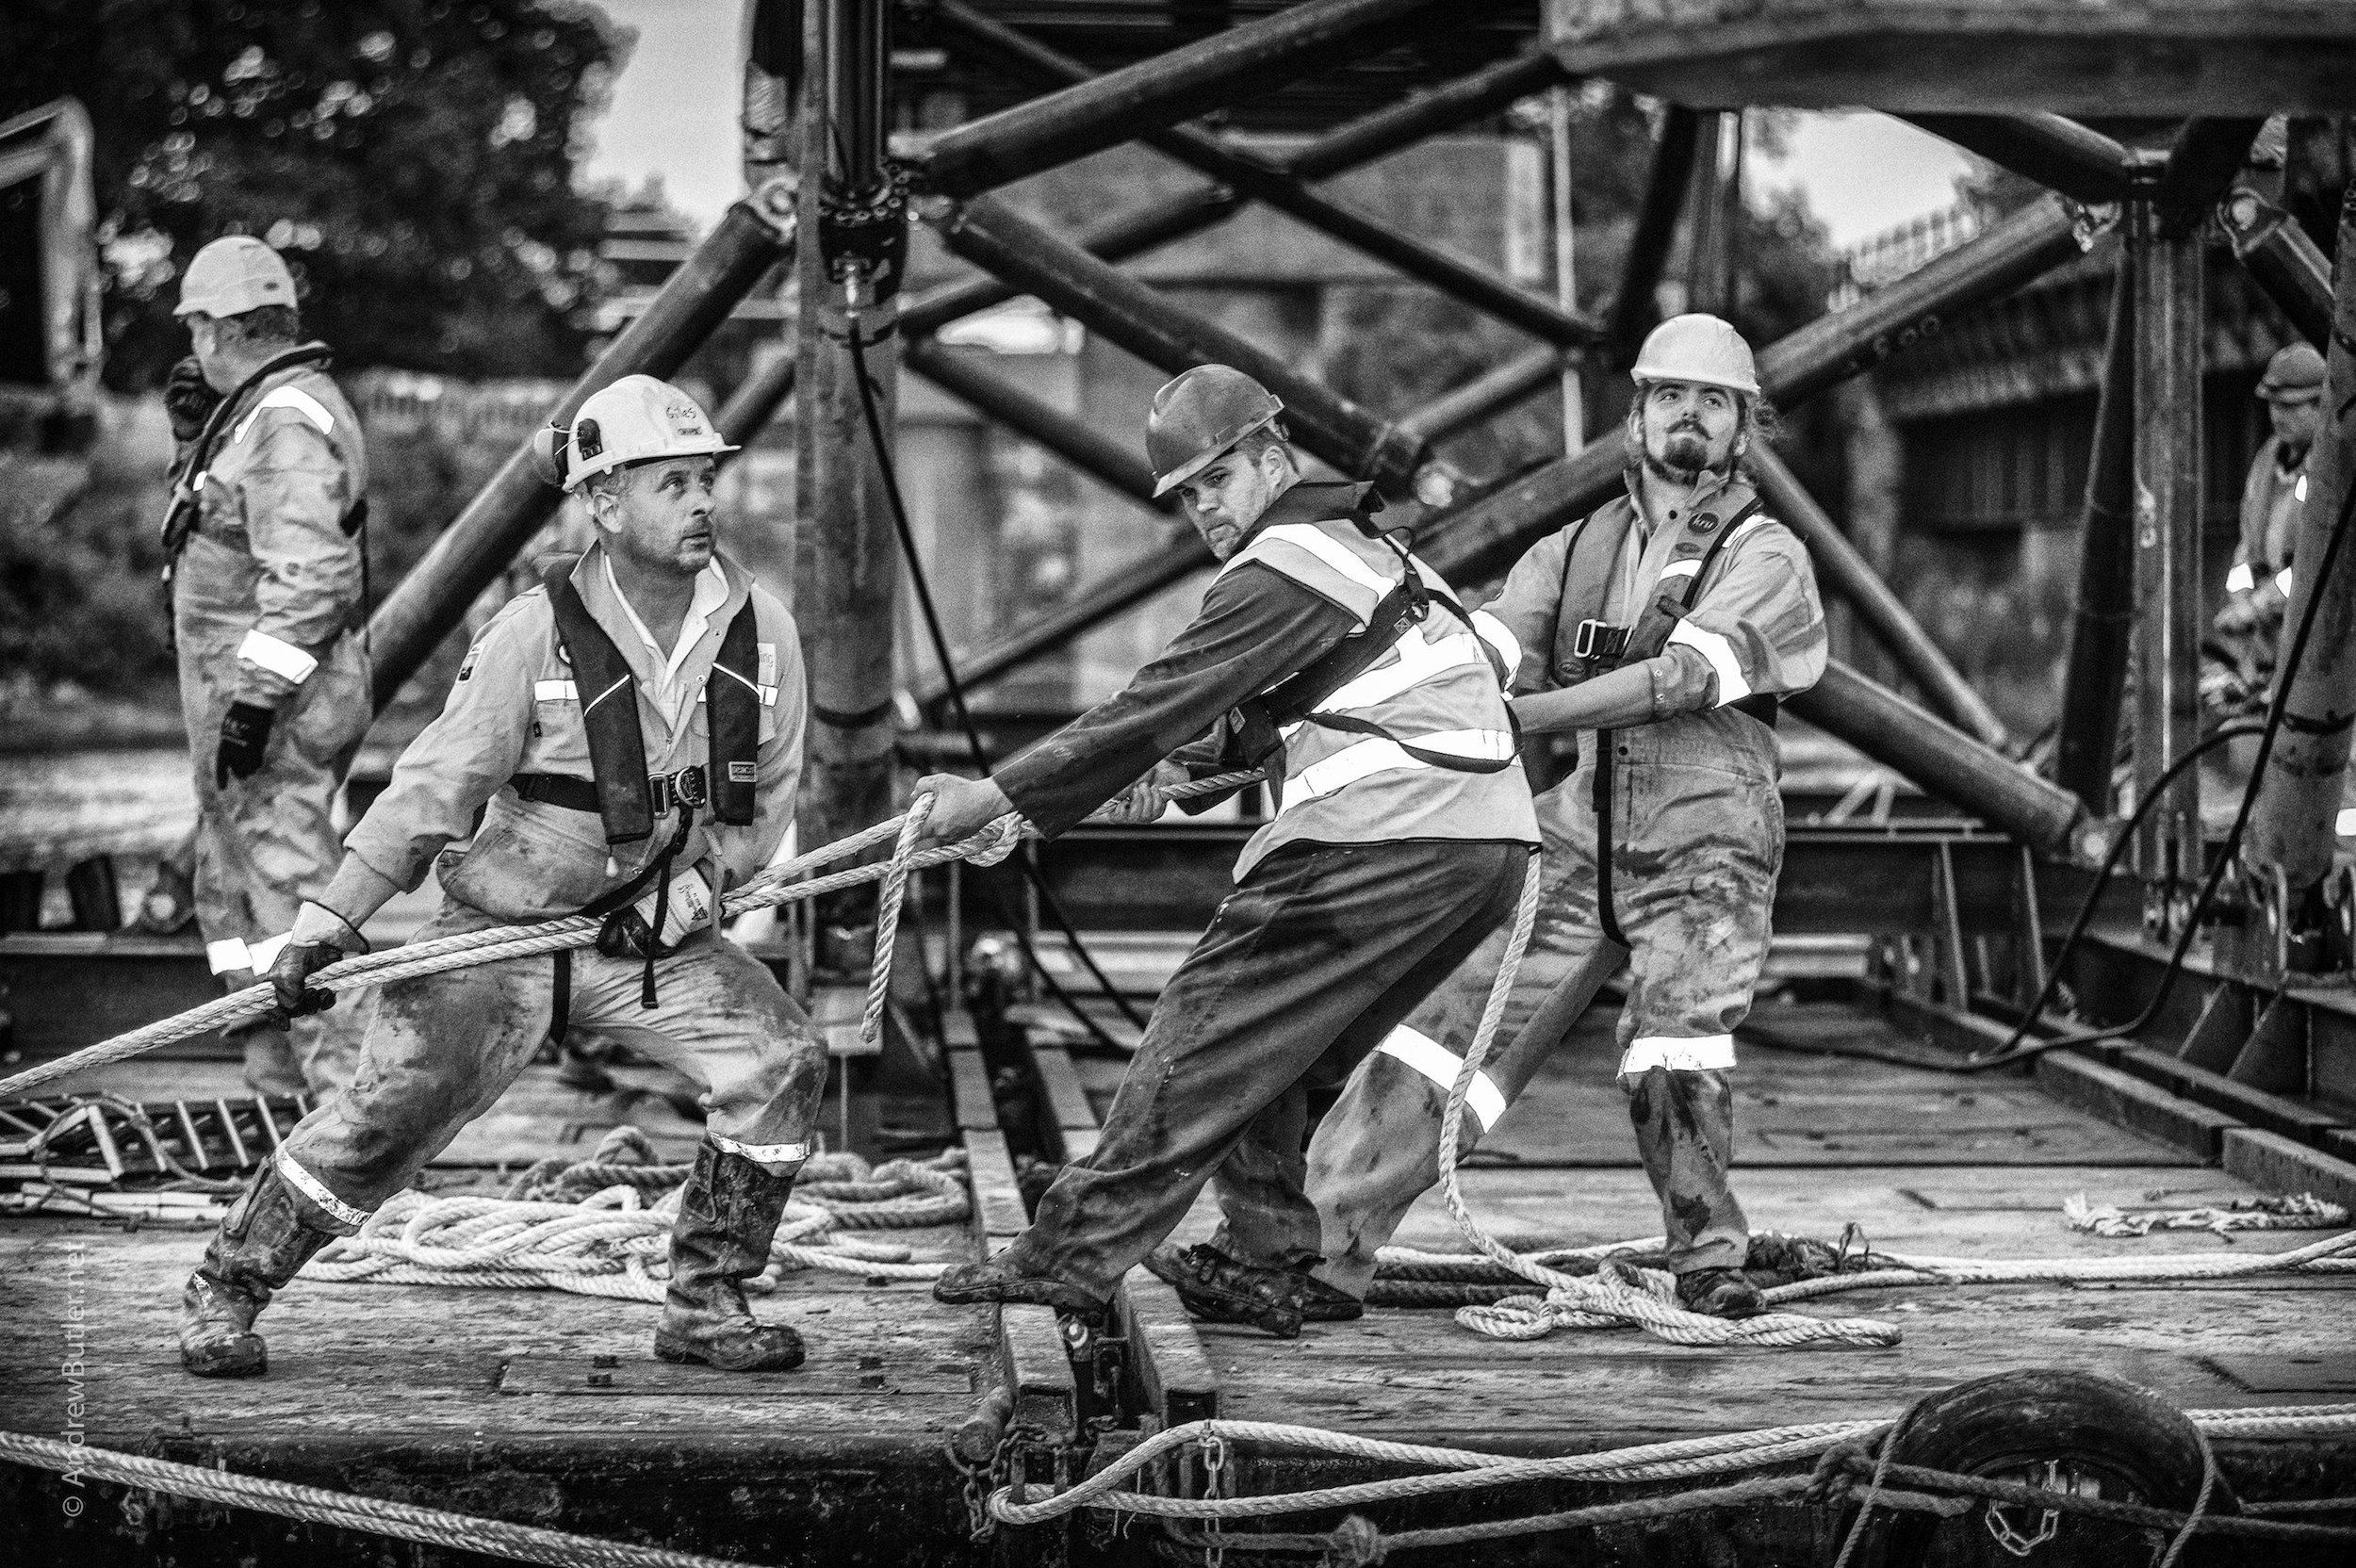 Black and White portrait photograph of Engineering Men by Exeter Devon Commercial Industrial Construction Photographer - Andrew Butler